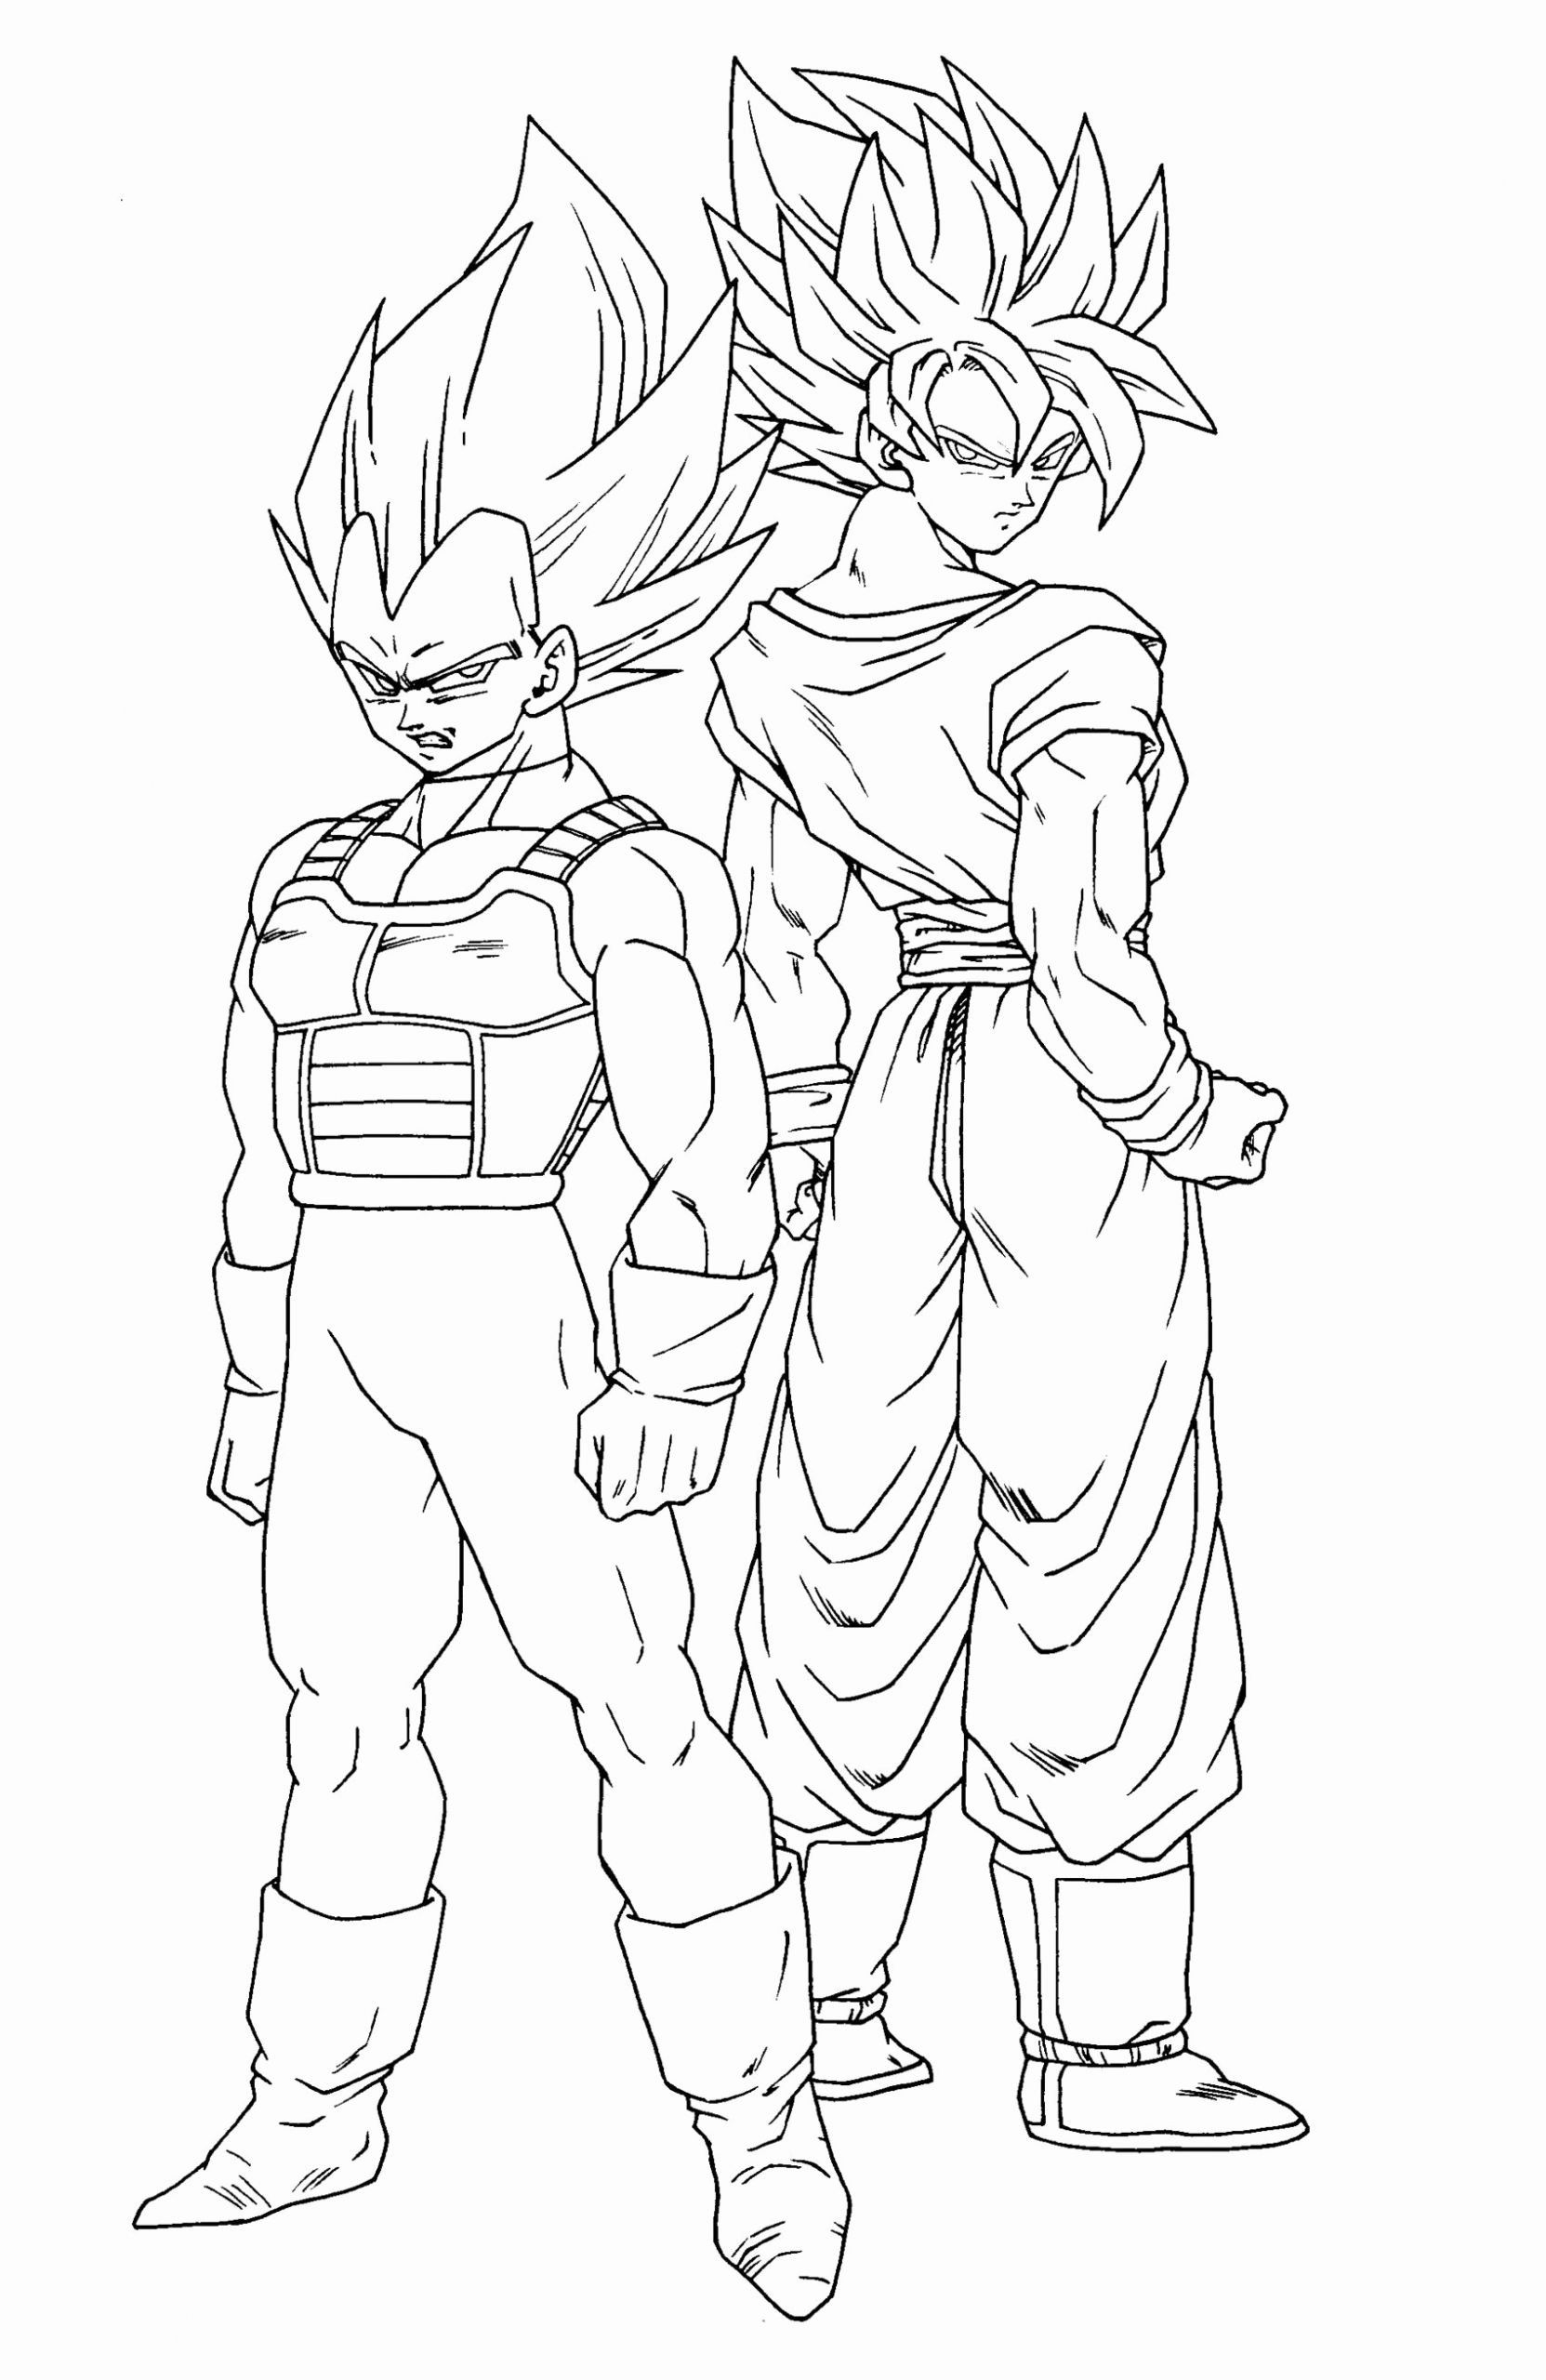 Dragon Ball Z Coloring Book Awesome Songoku And Ve A Dragon Ball Z Kids Coloring Pages Goku Desenho Vegeta Desenho Desenhos Dragonball